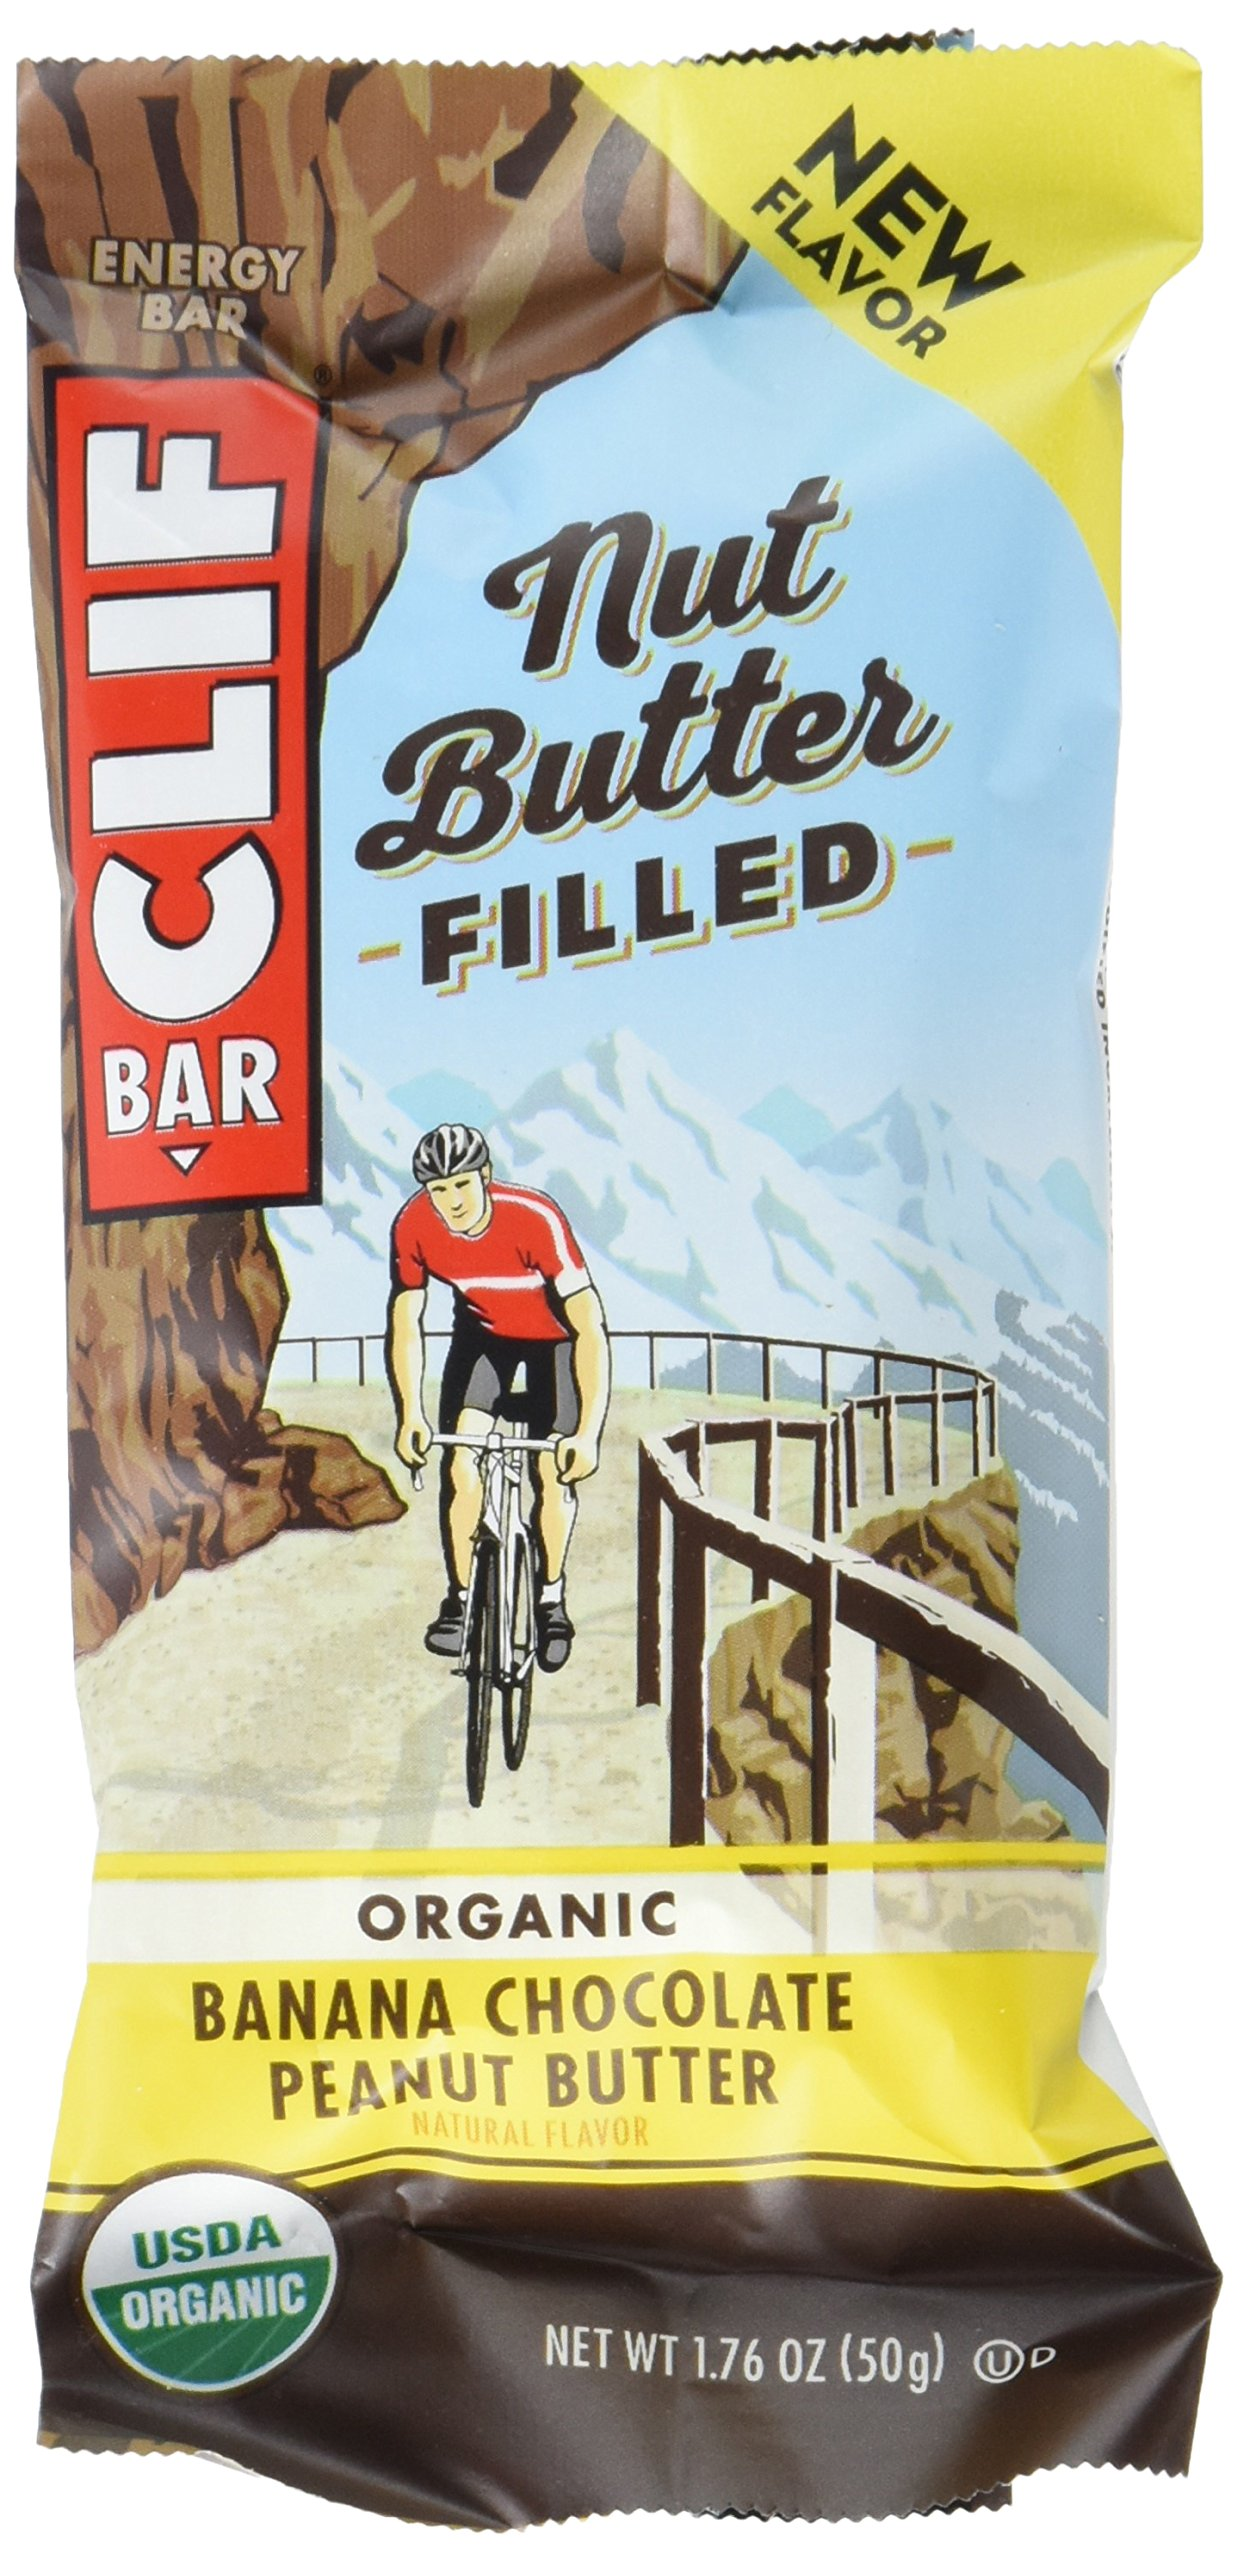 CLIF Nut Butter Filled - Organic Energy Bar - Banana Chocolate Peanut Butter - 1.76 Ounce Protein Snack Bar, 12 Count